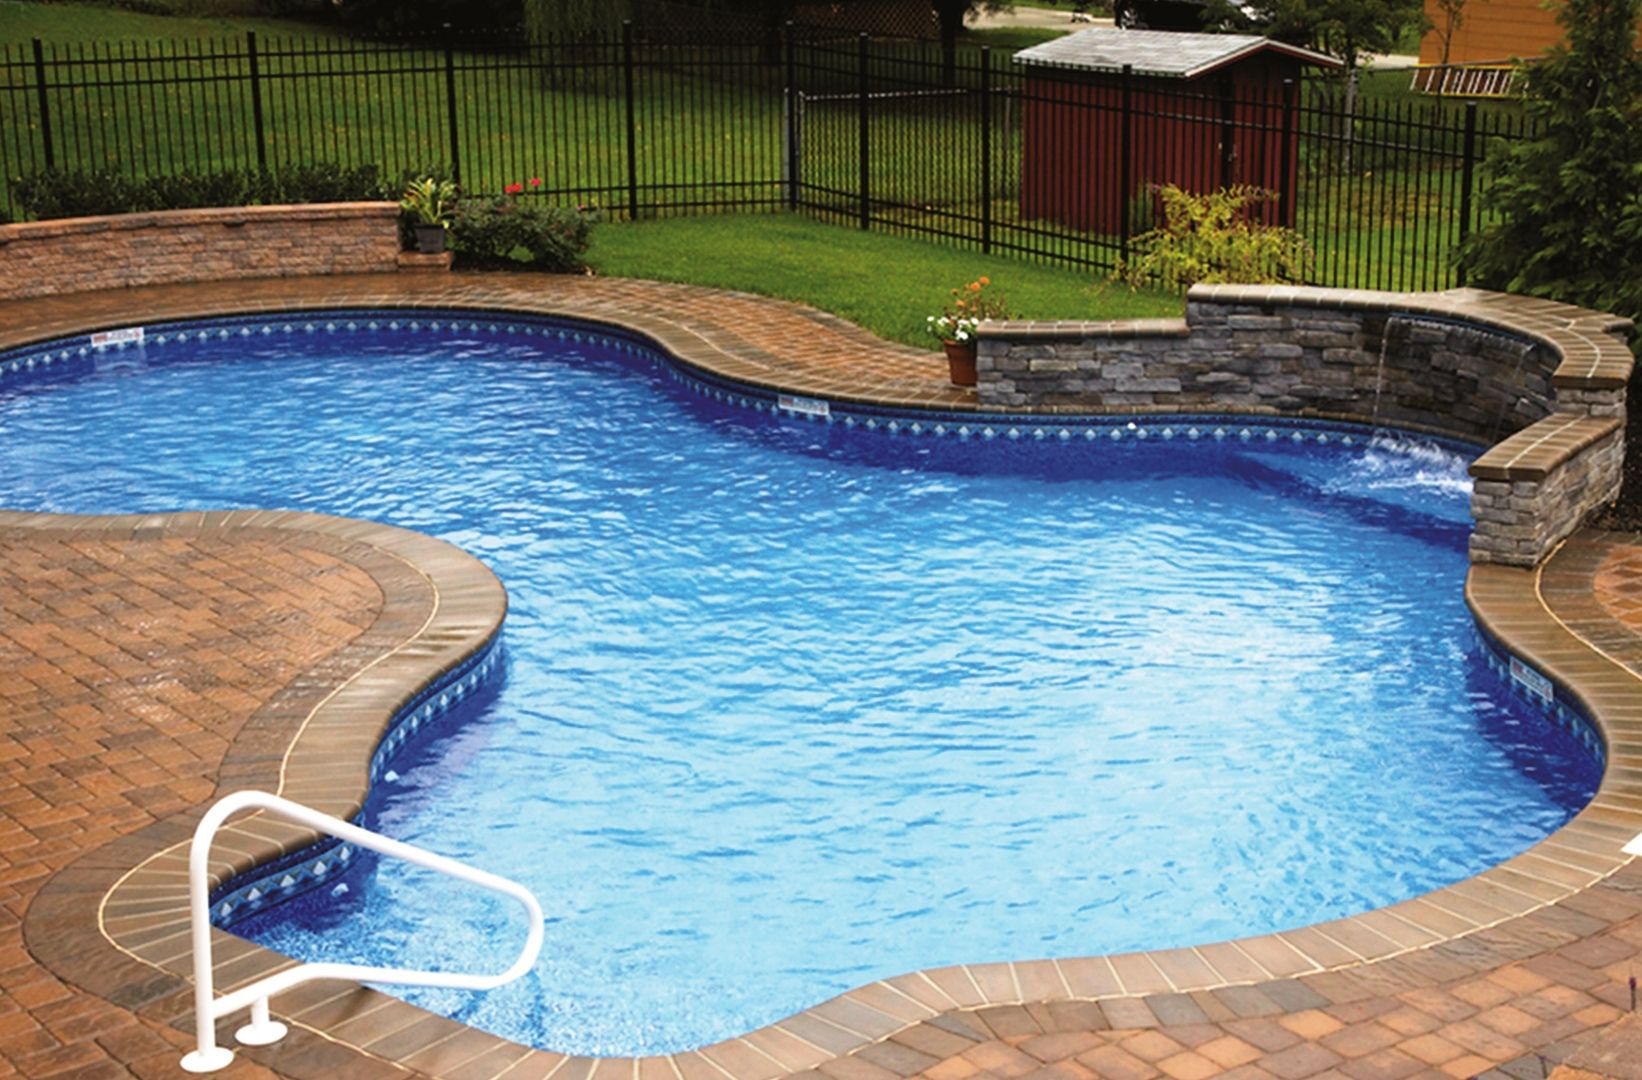 Back yard swimming pool ideas swimming pool design for Swimming pool designs and plans